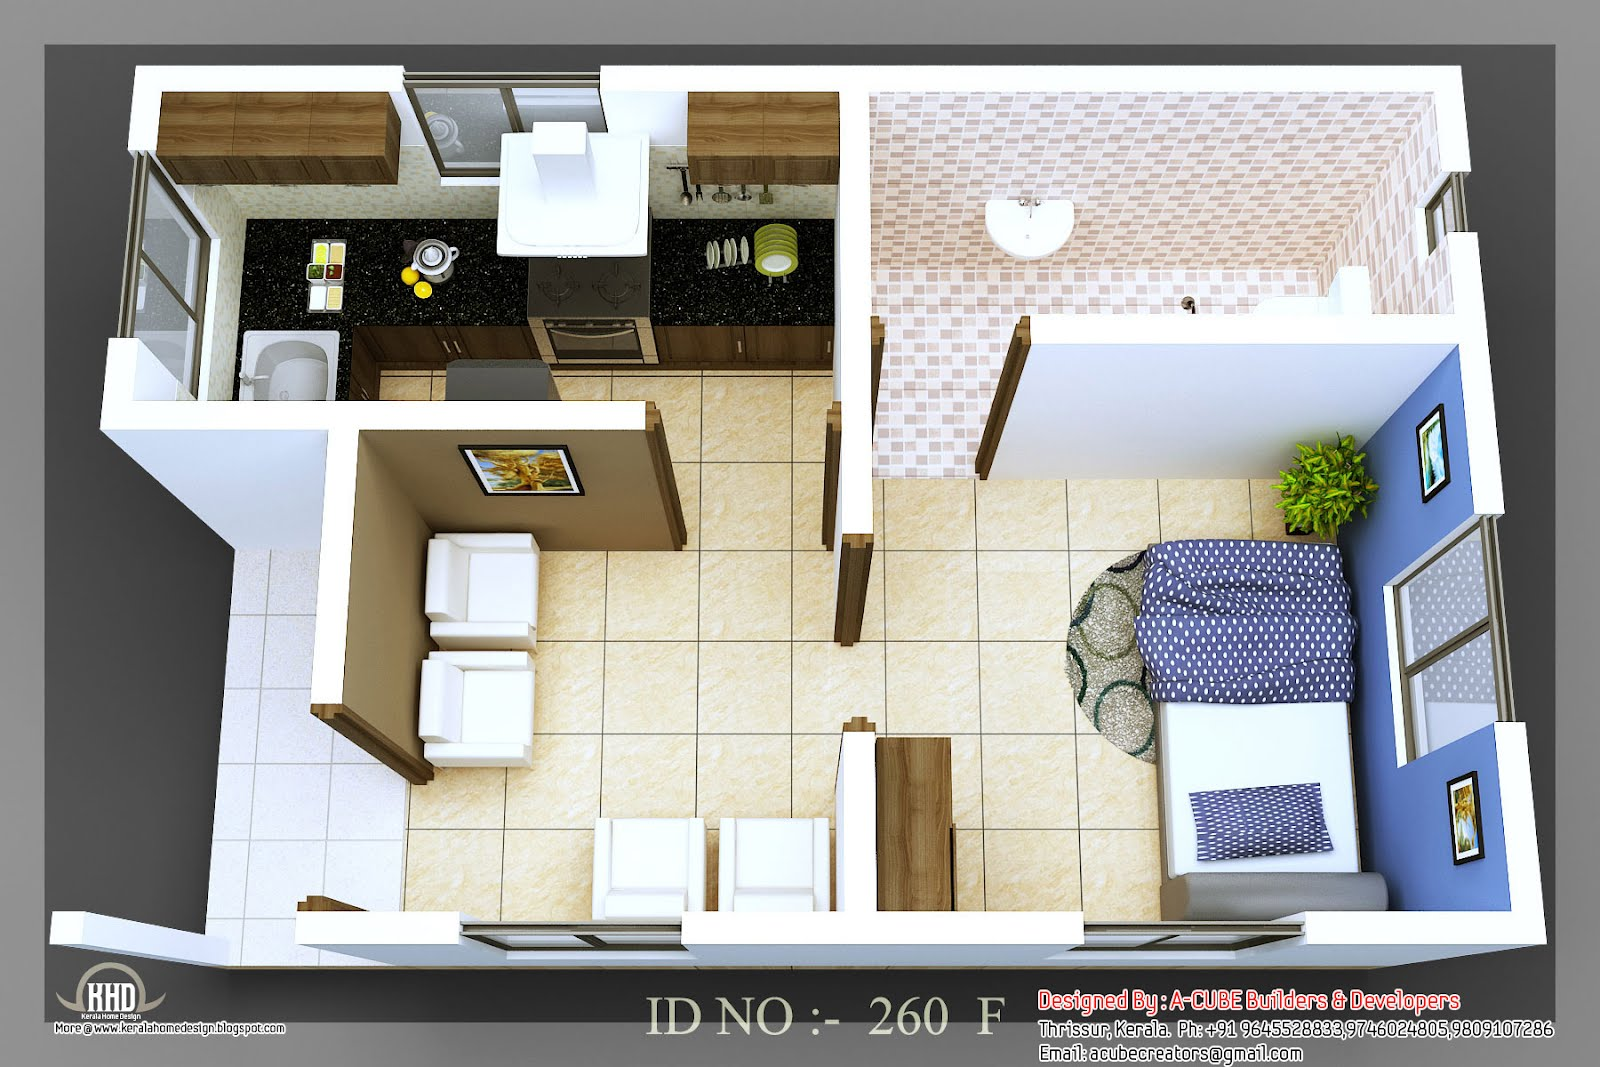 3d isometric views of small house plans home appliance for Small home designs floor plans